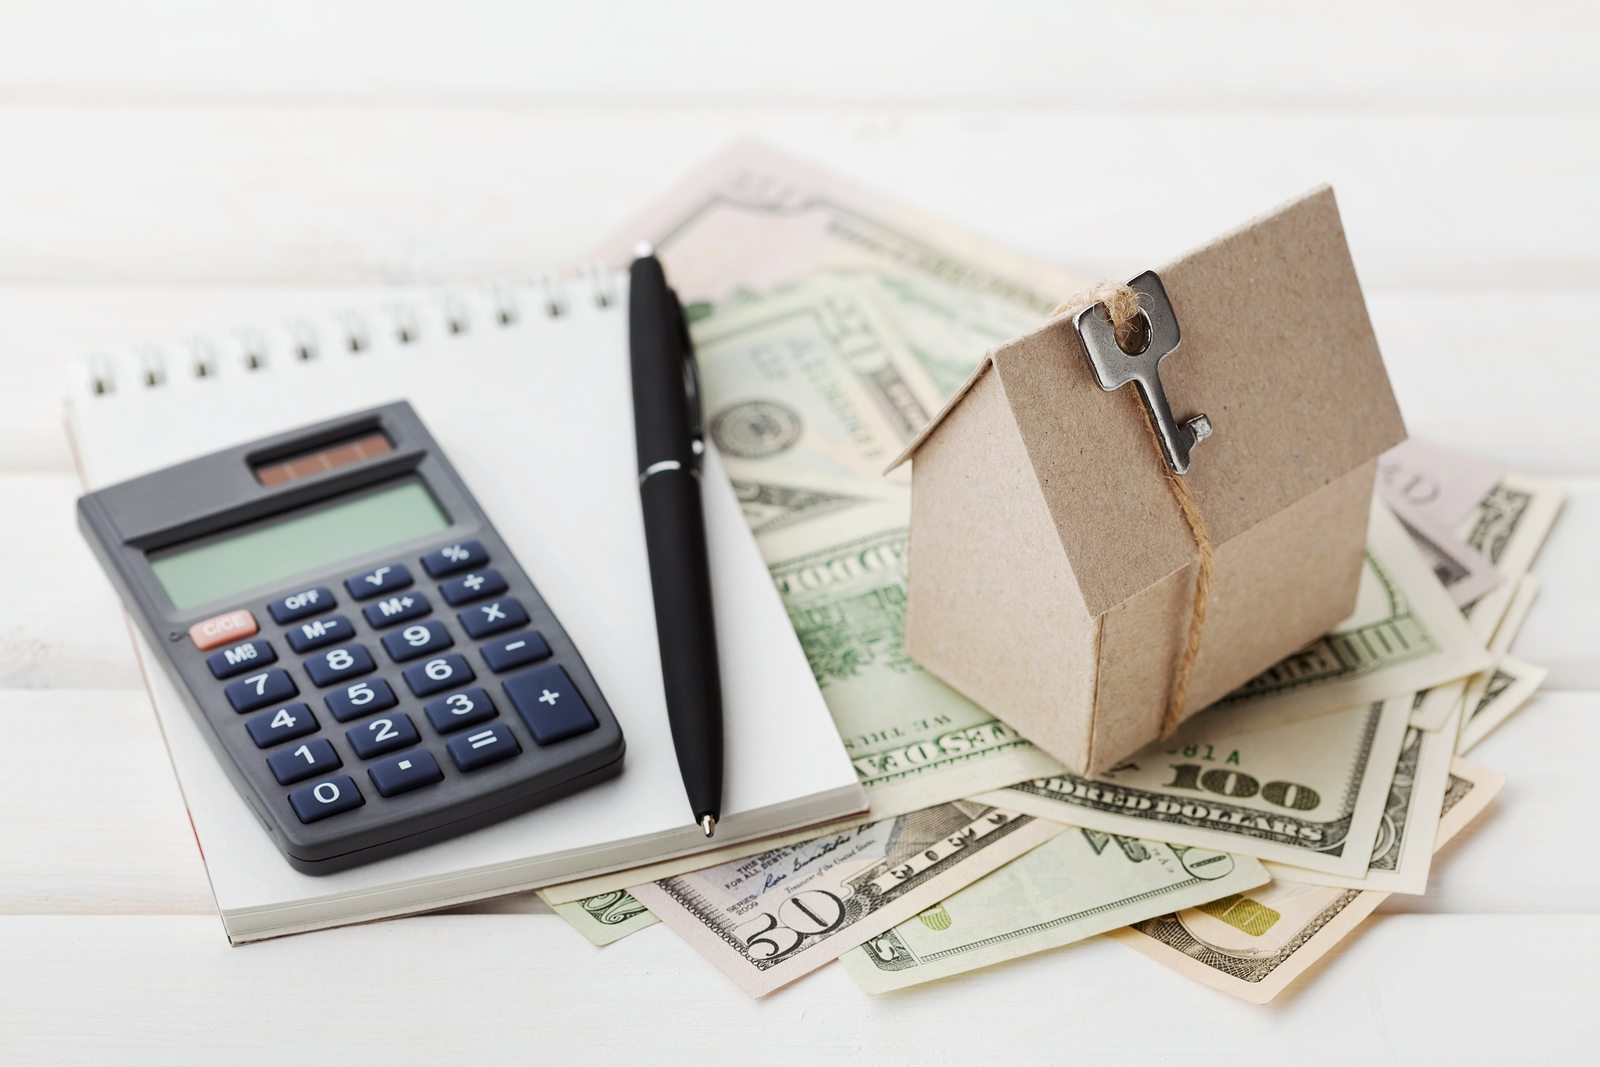 Model of cardboard house with key, calculator, notebook, pen and cash dollars. House building, loan and real estate. Cost of public utilities, insurance, rent or buying a new home concept.